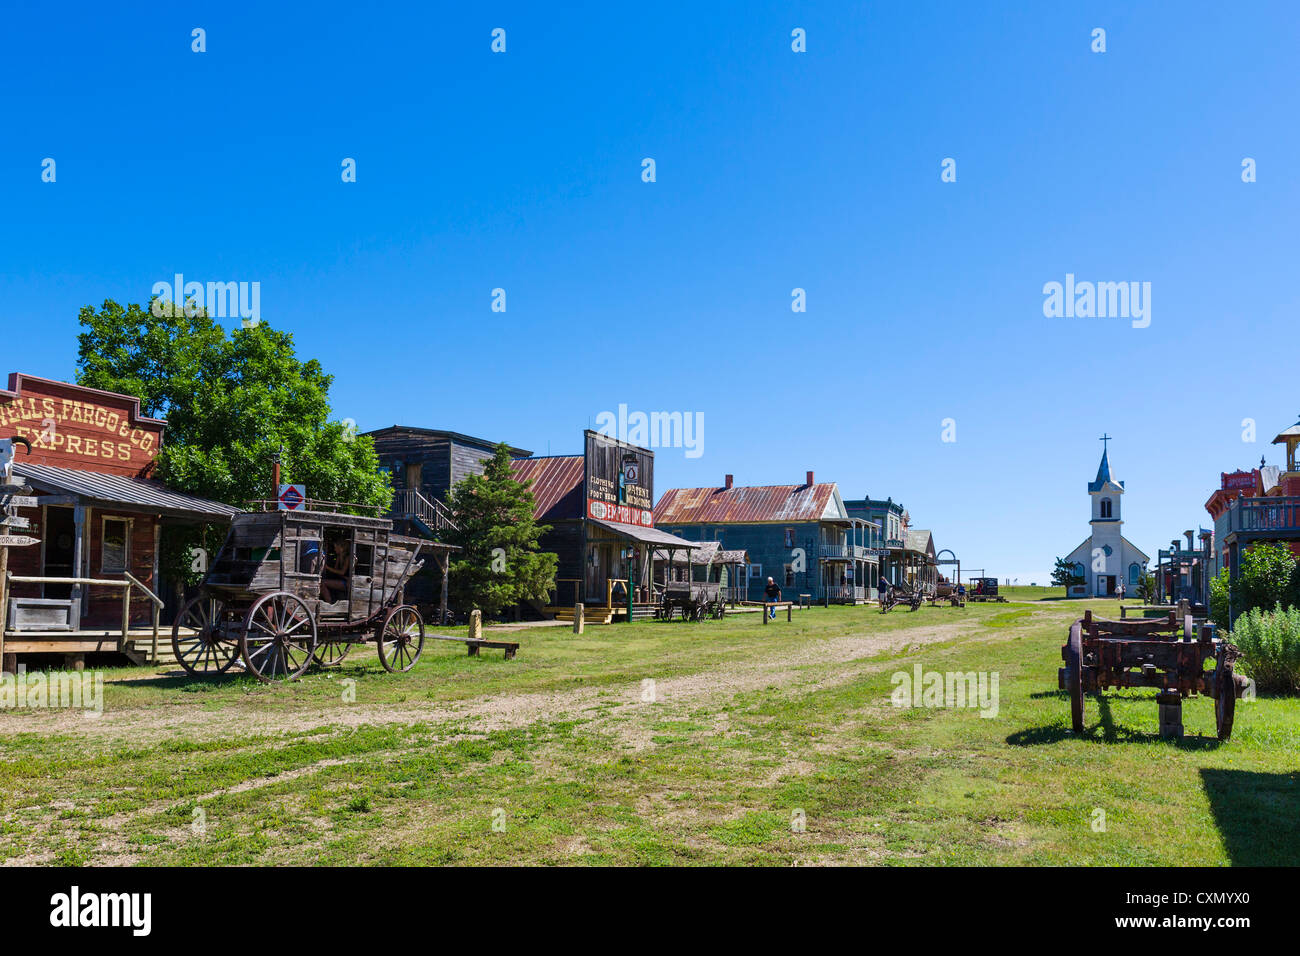 Main Street in '1880 Town' western attraction in Murdo, South Dakota, USA - Stock Image